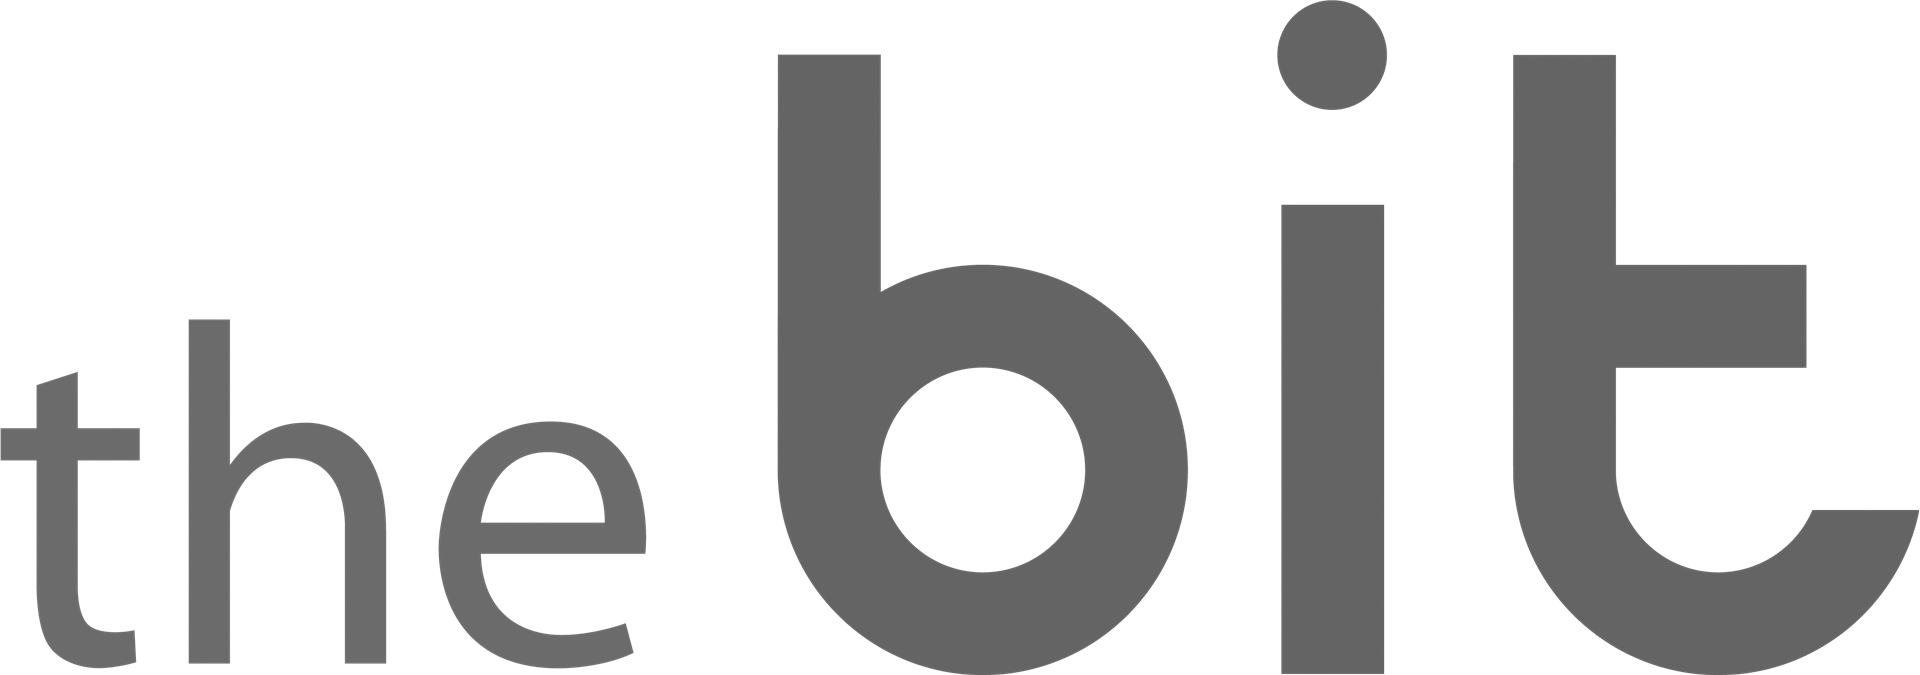 The Bit logo bw